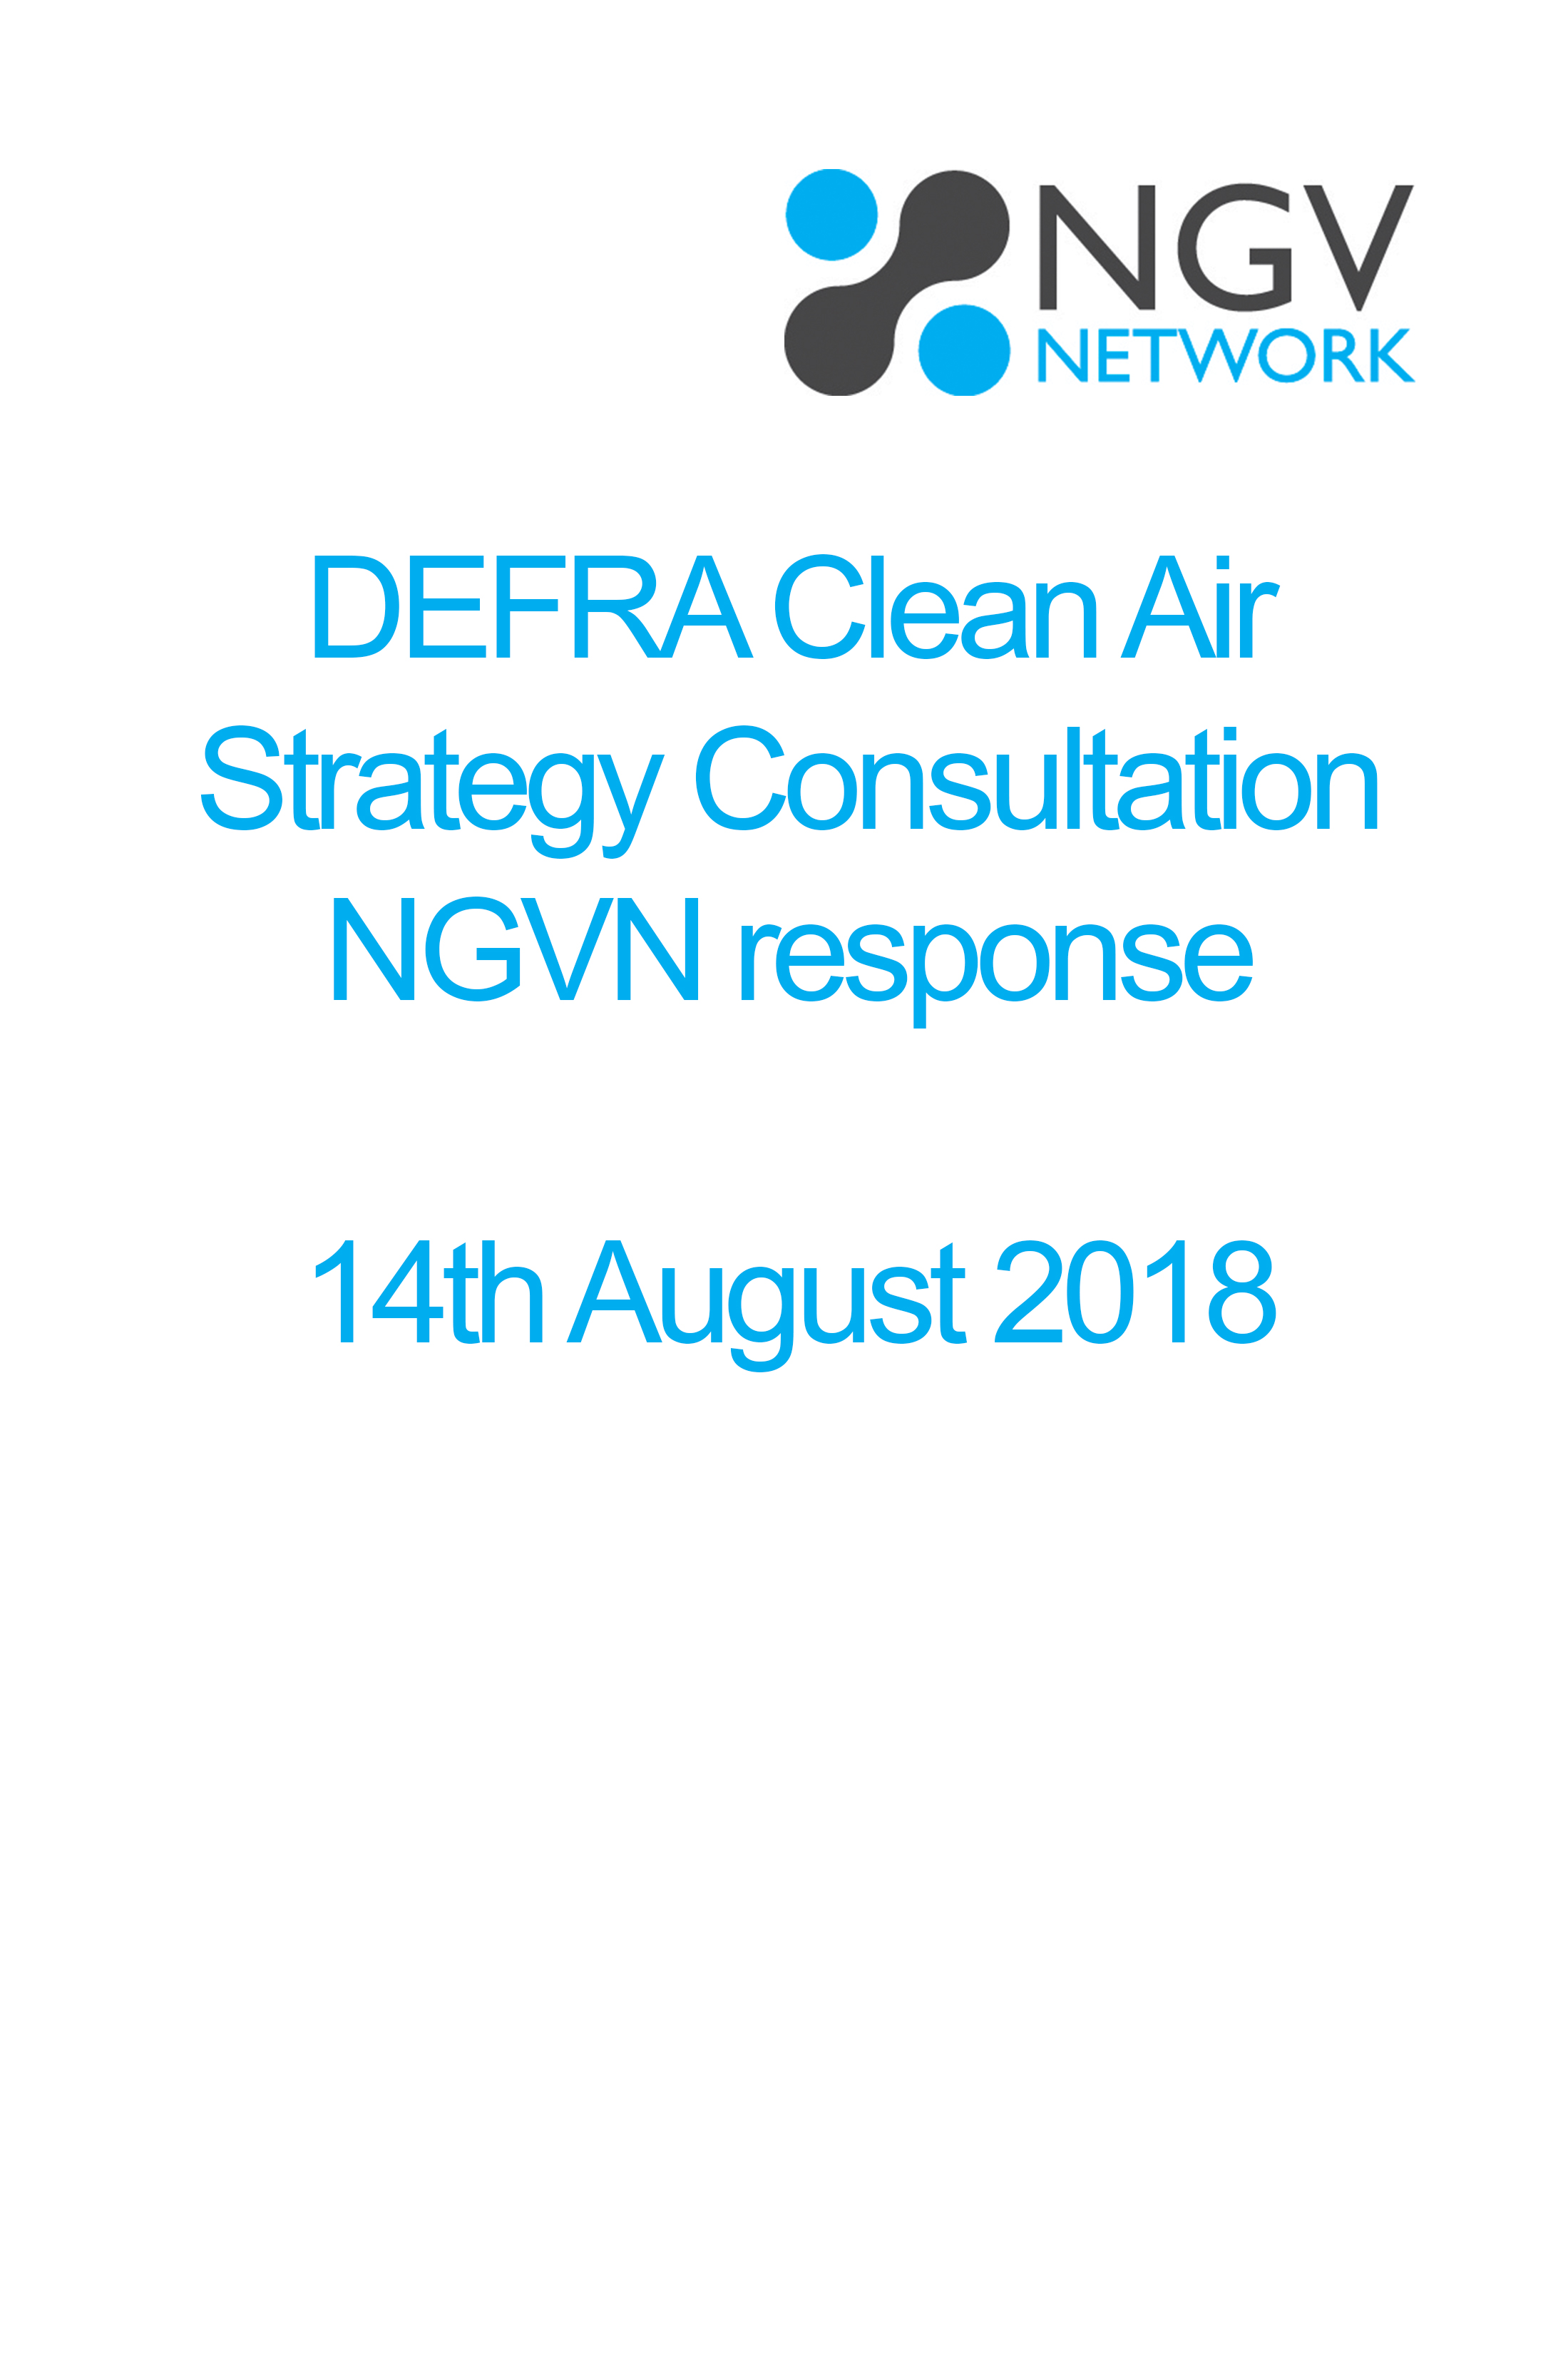 DEFRA Clean Air Strategy Consultation NGVN response